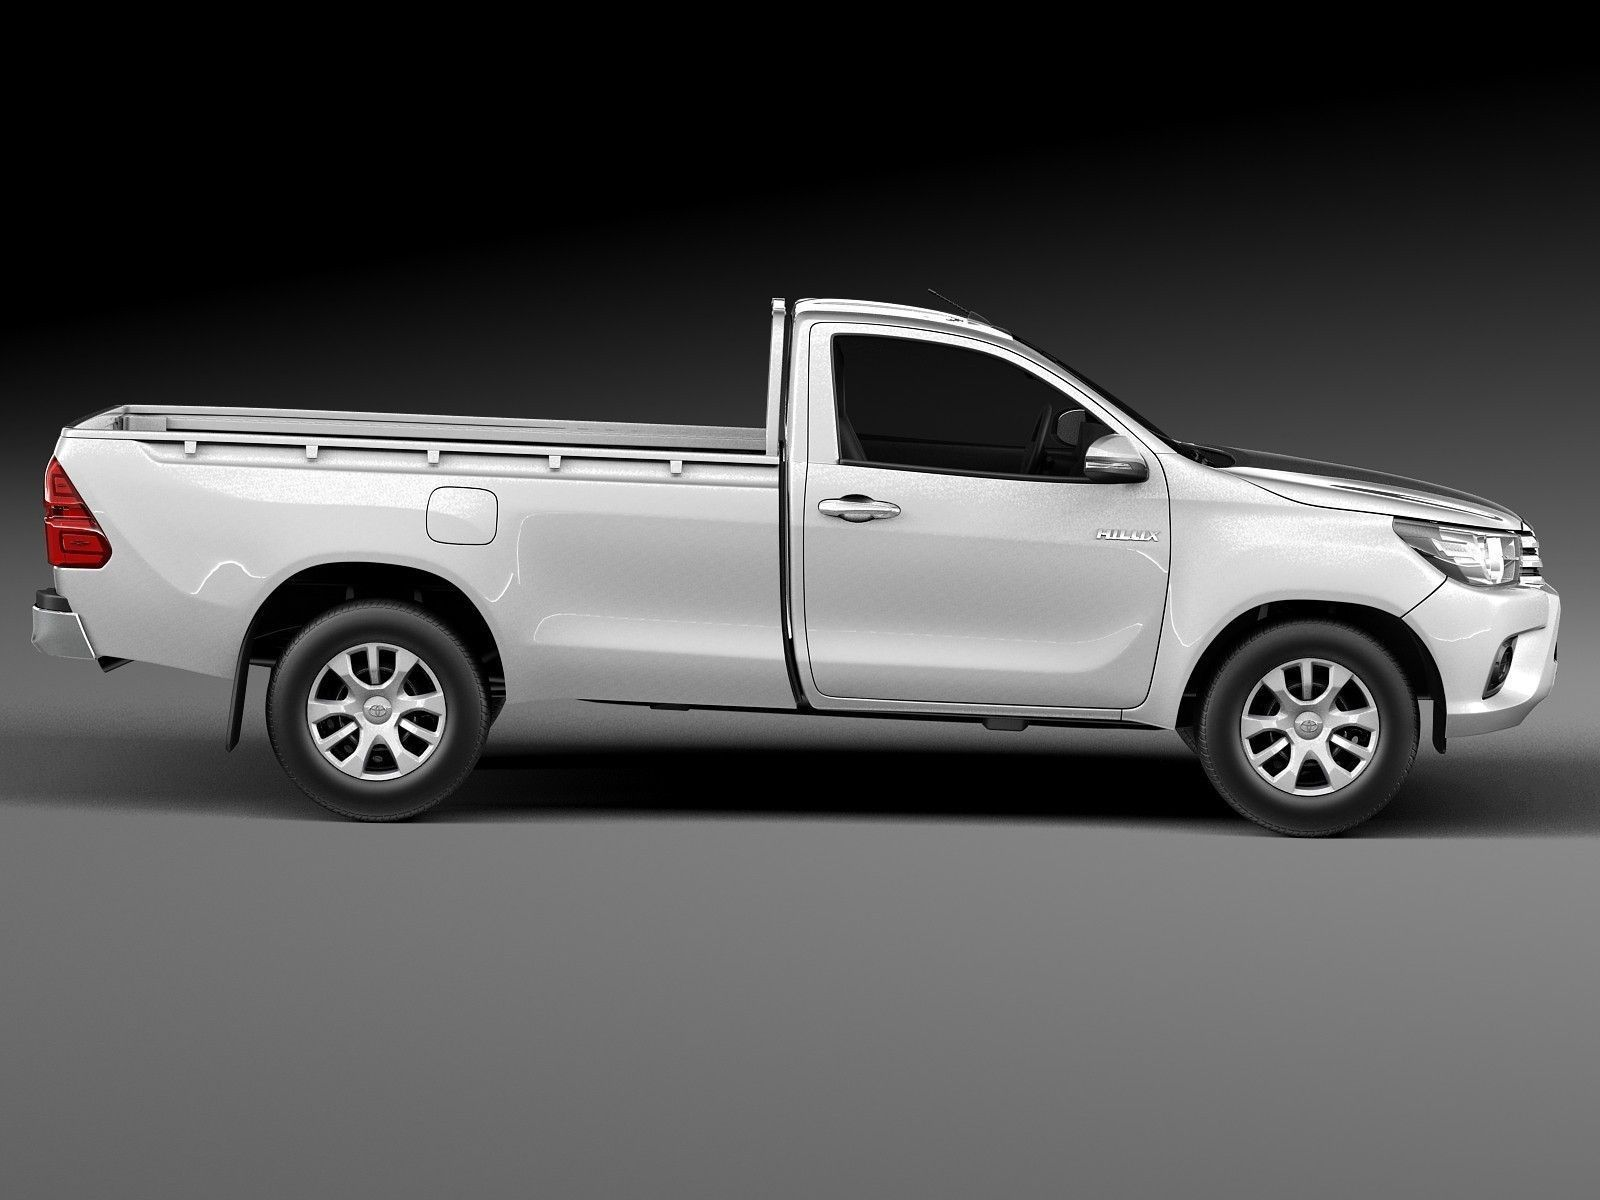 toyota hilux single cab 2016 3d model max obj 3ds fbx c4d lwo lw lws. Black Bedroom Furniture Sets. Home Design Ideas